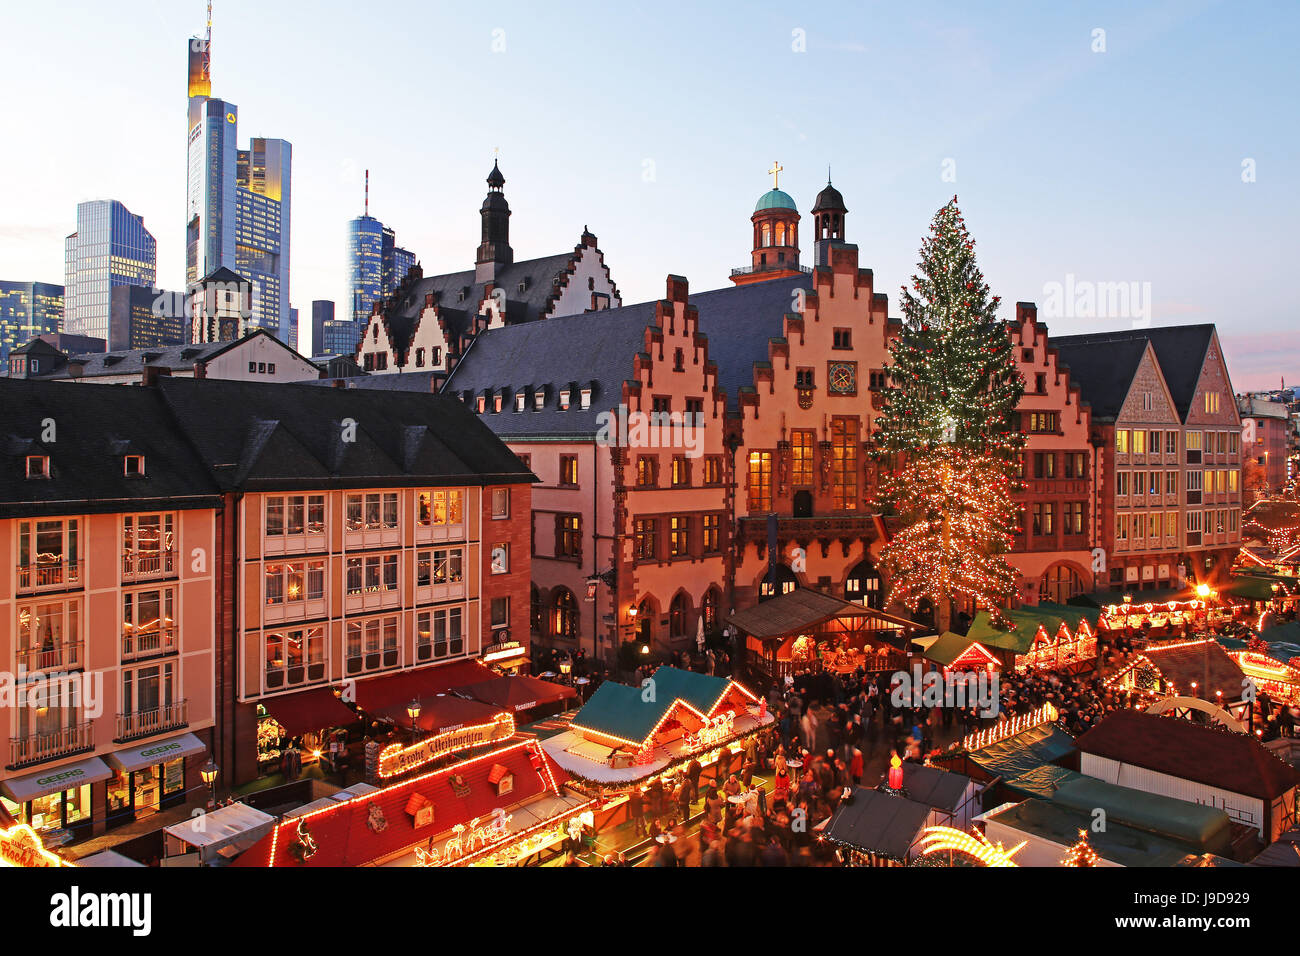 Christmas Fair on Roemerberg Square, Frankfurt am Main, Hesse, Germany, Europe Stock Photo